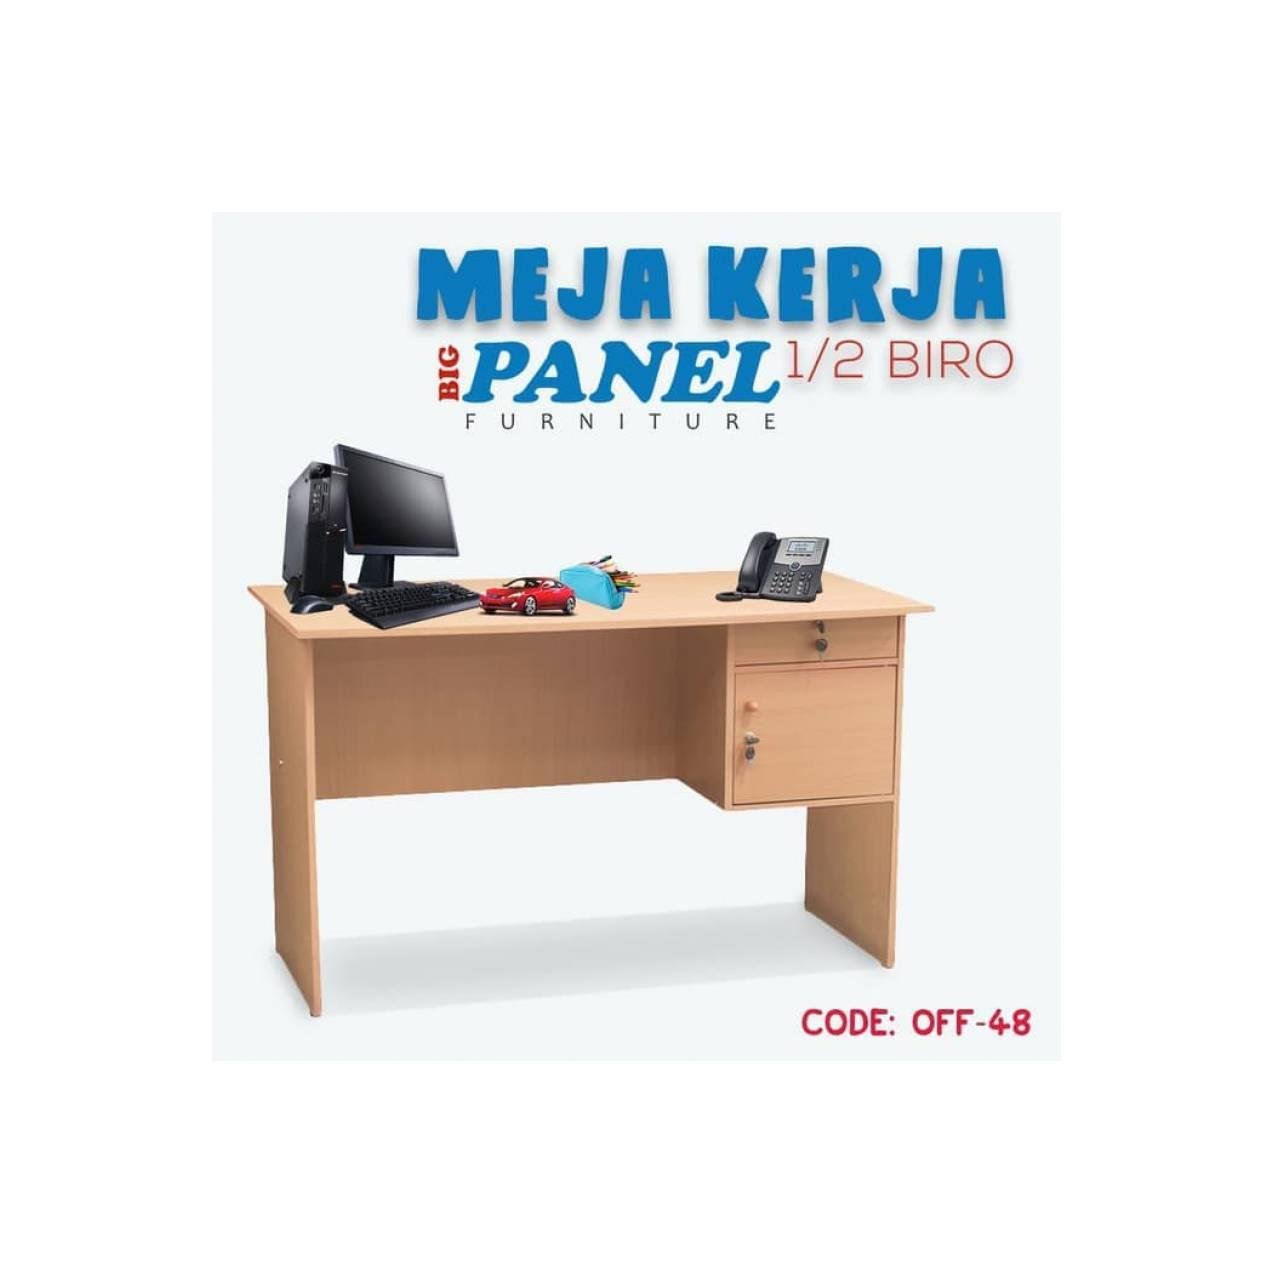 Meja Kerja Meja Kantor Furniture Office Table Office Desk